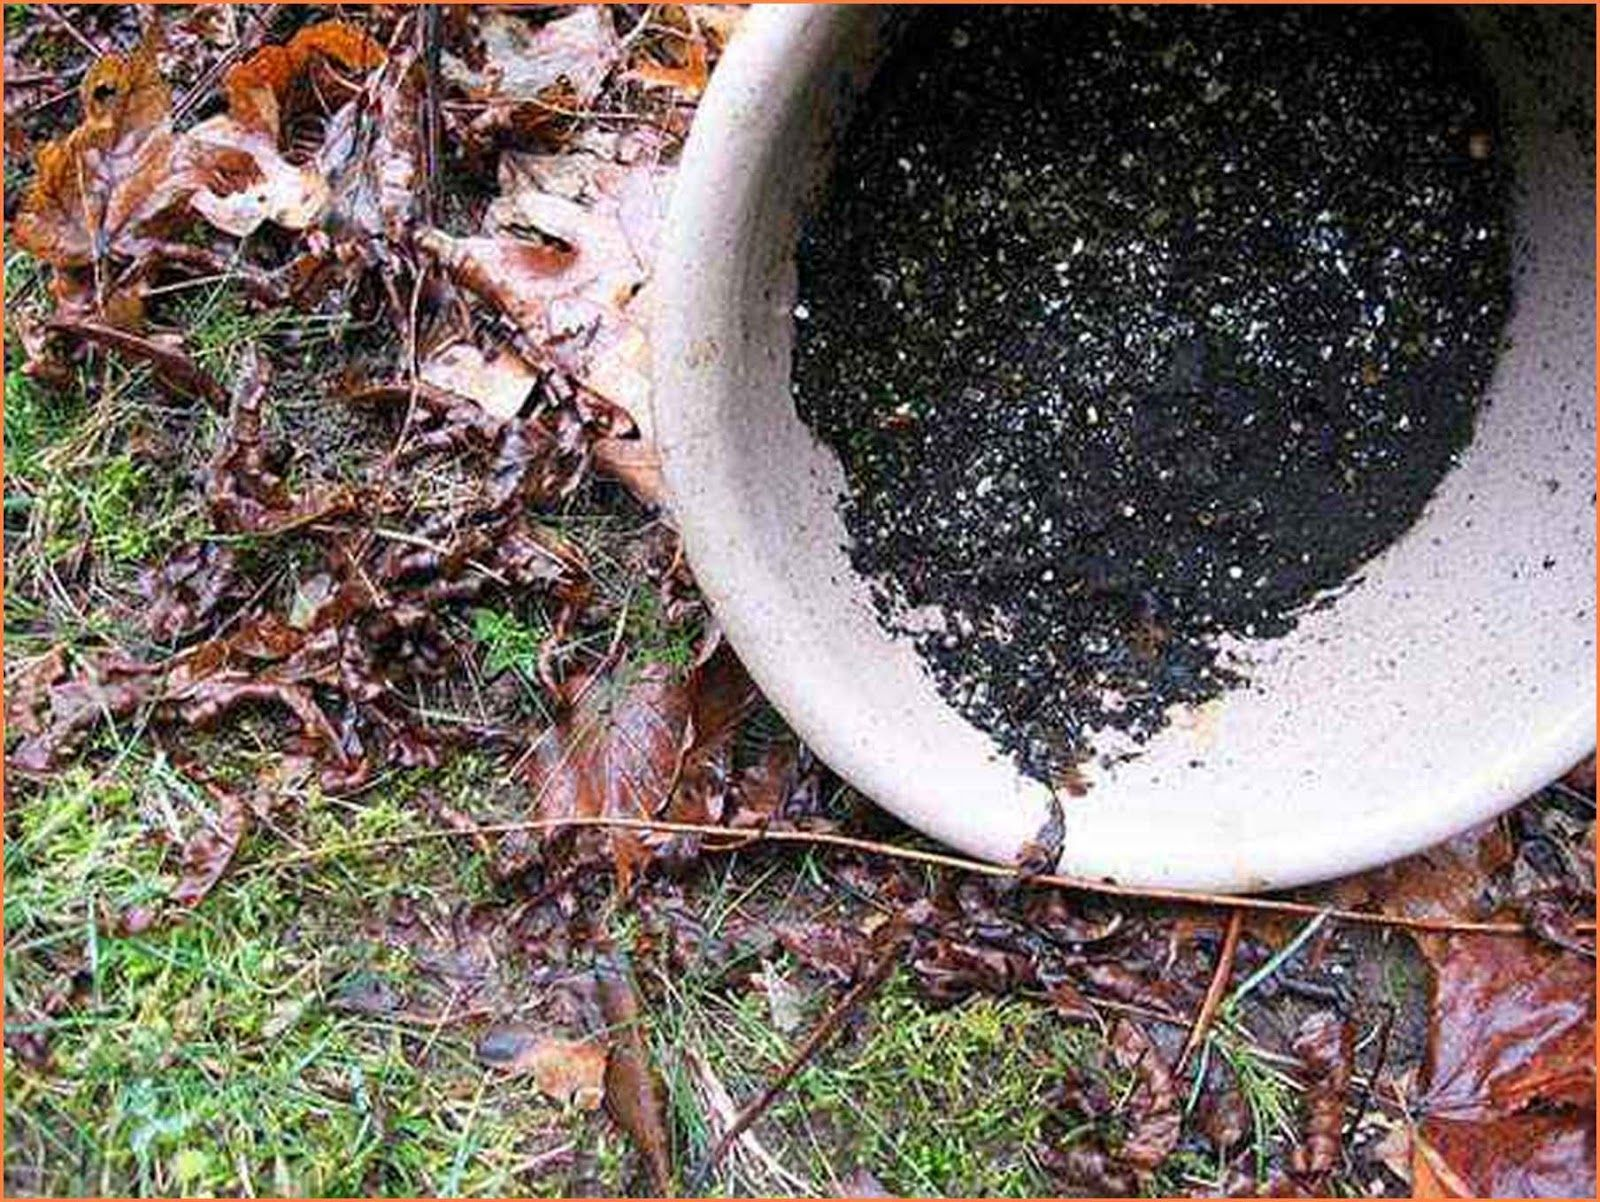 How To Deter Mosquitoes From Your Yard | Lawn, garden ...